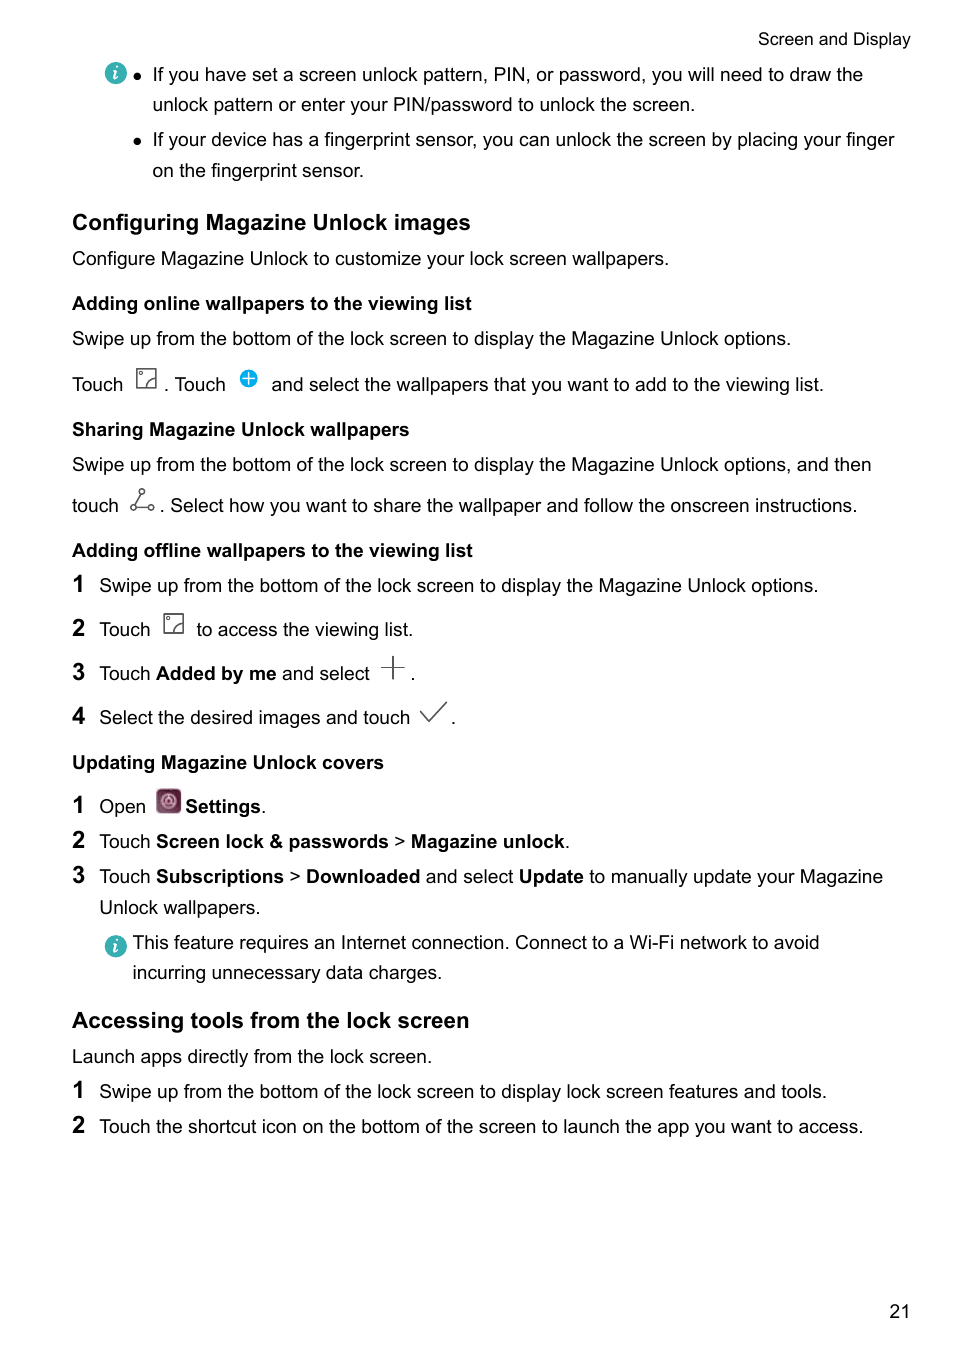 Configuring magazine unlock images, Adding online wallpapers to the on